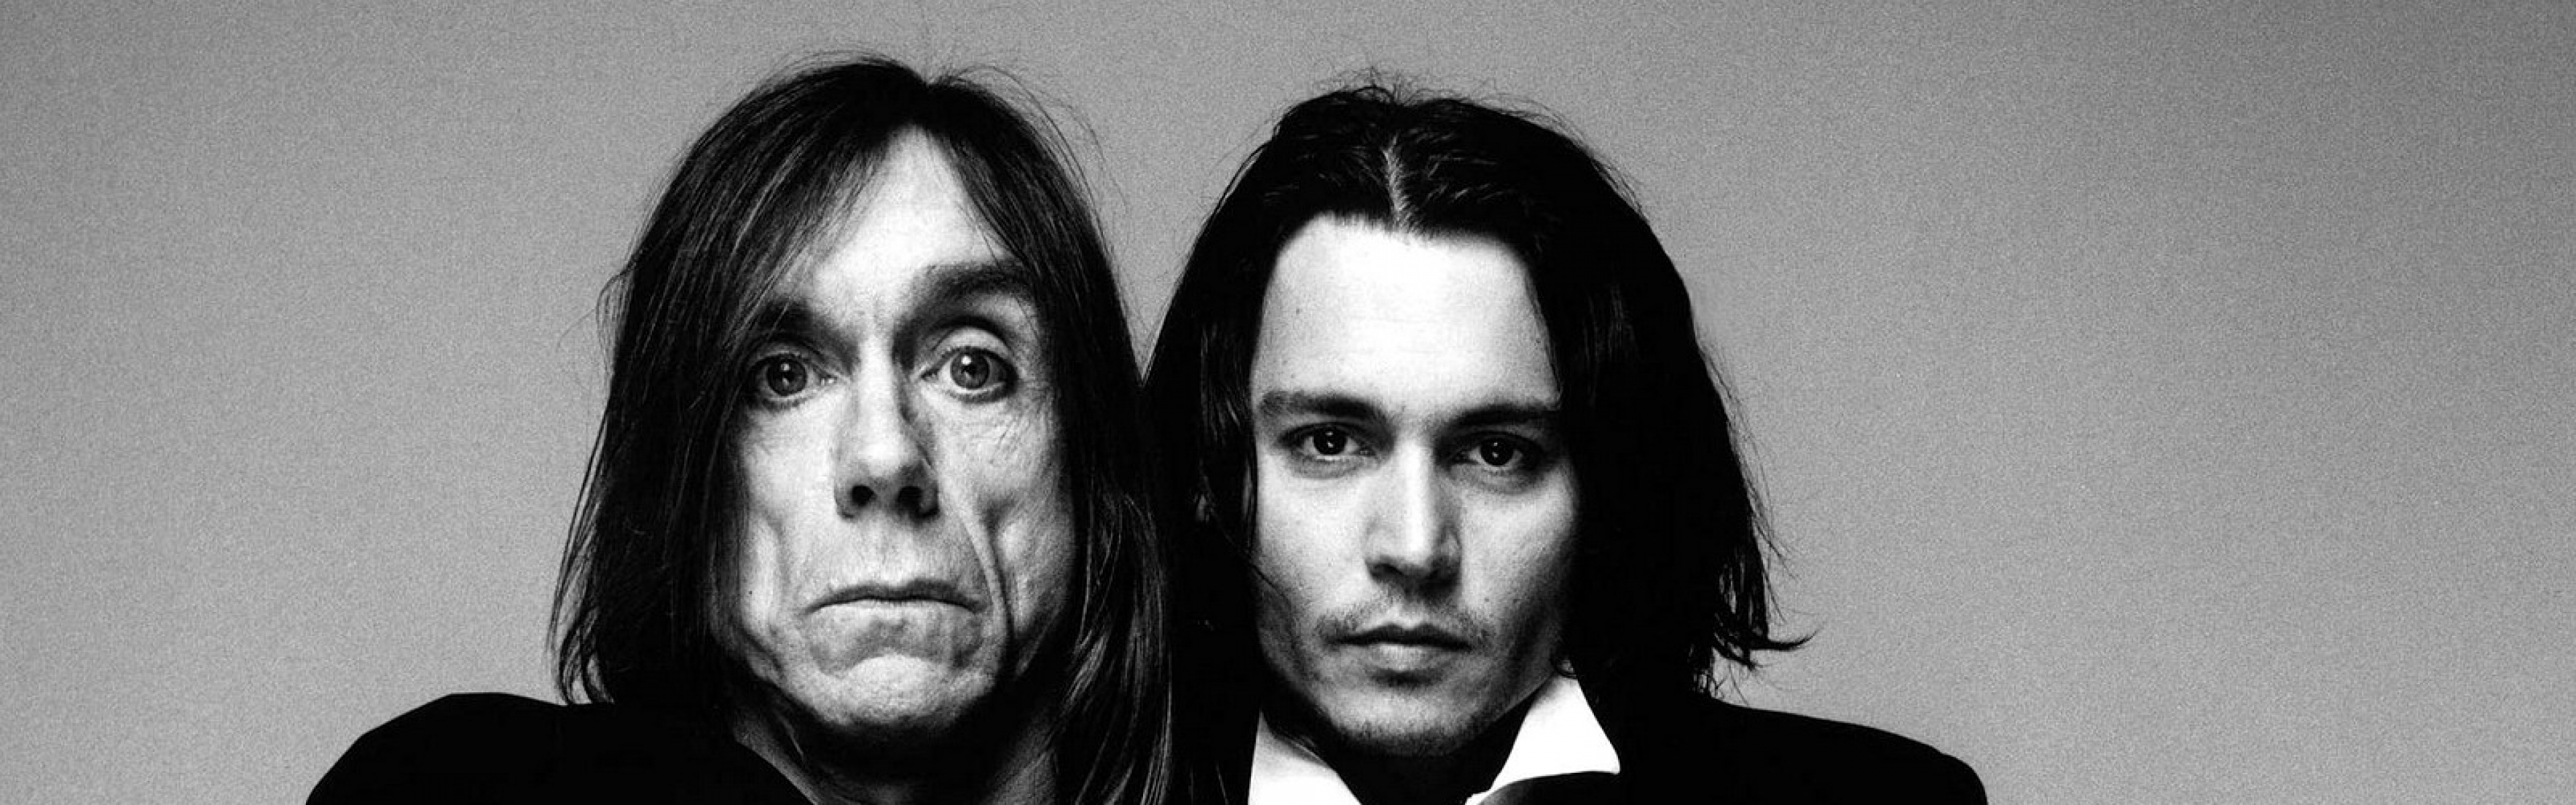 3840x1200 Wallpaper johnny depp, iggy pop, men, actors, celebrities